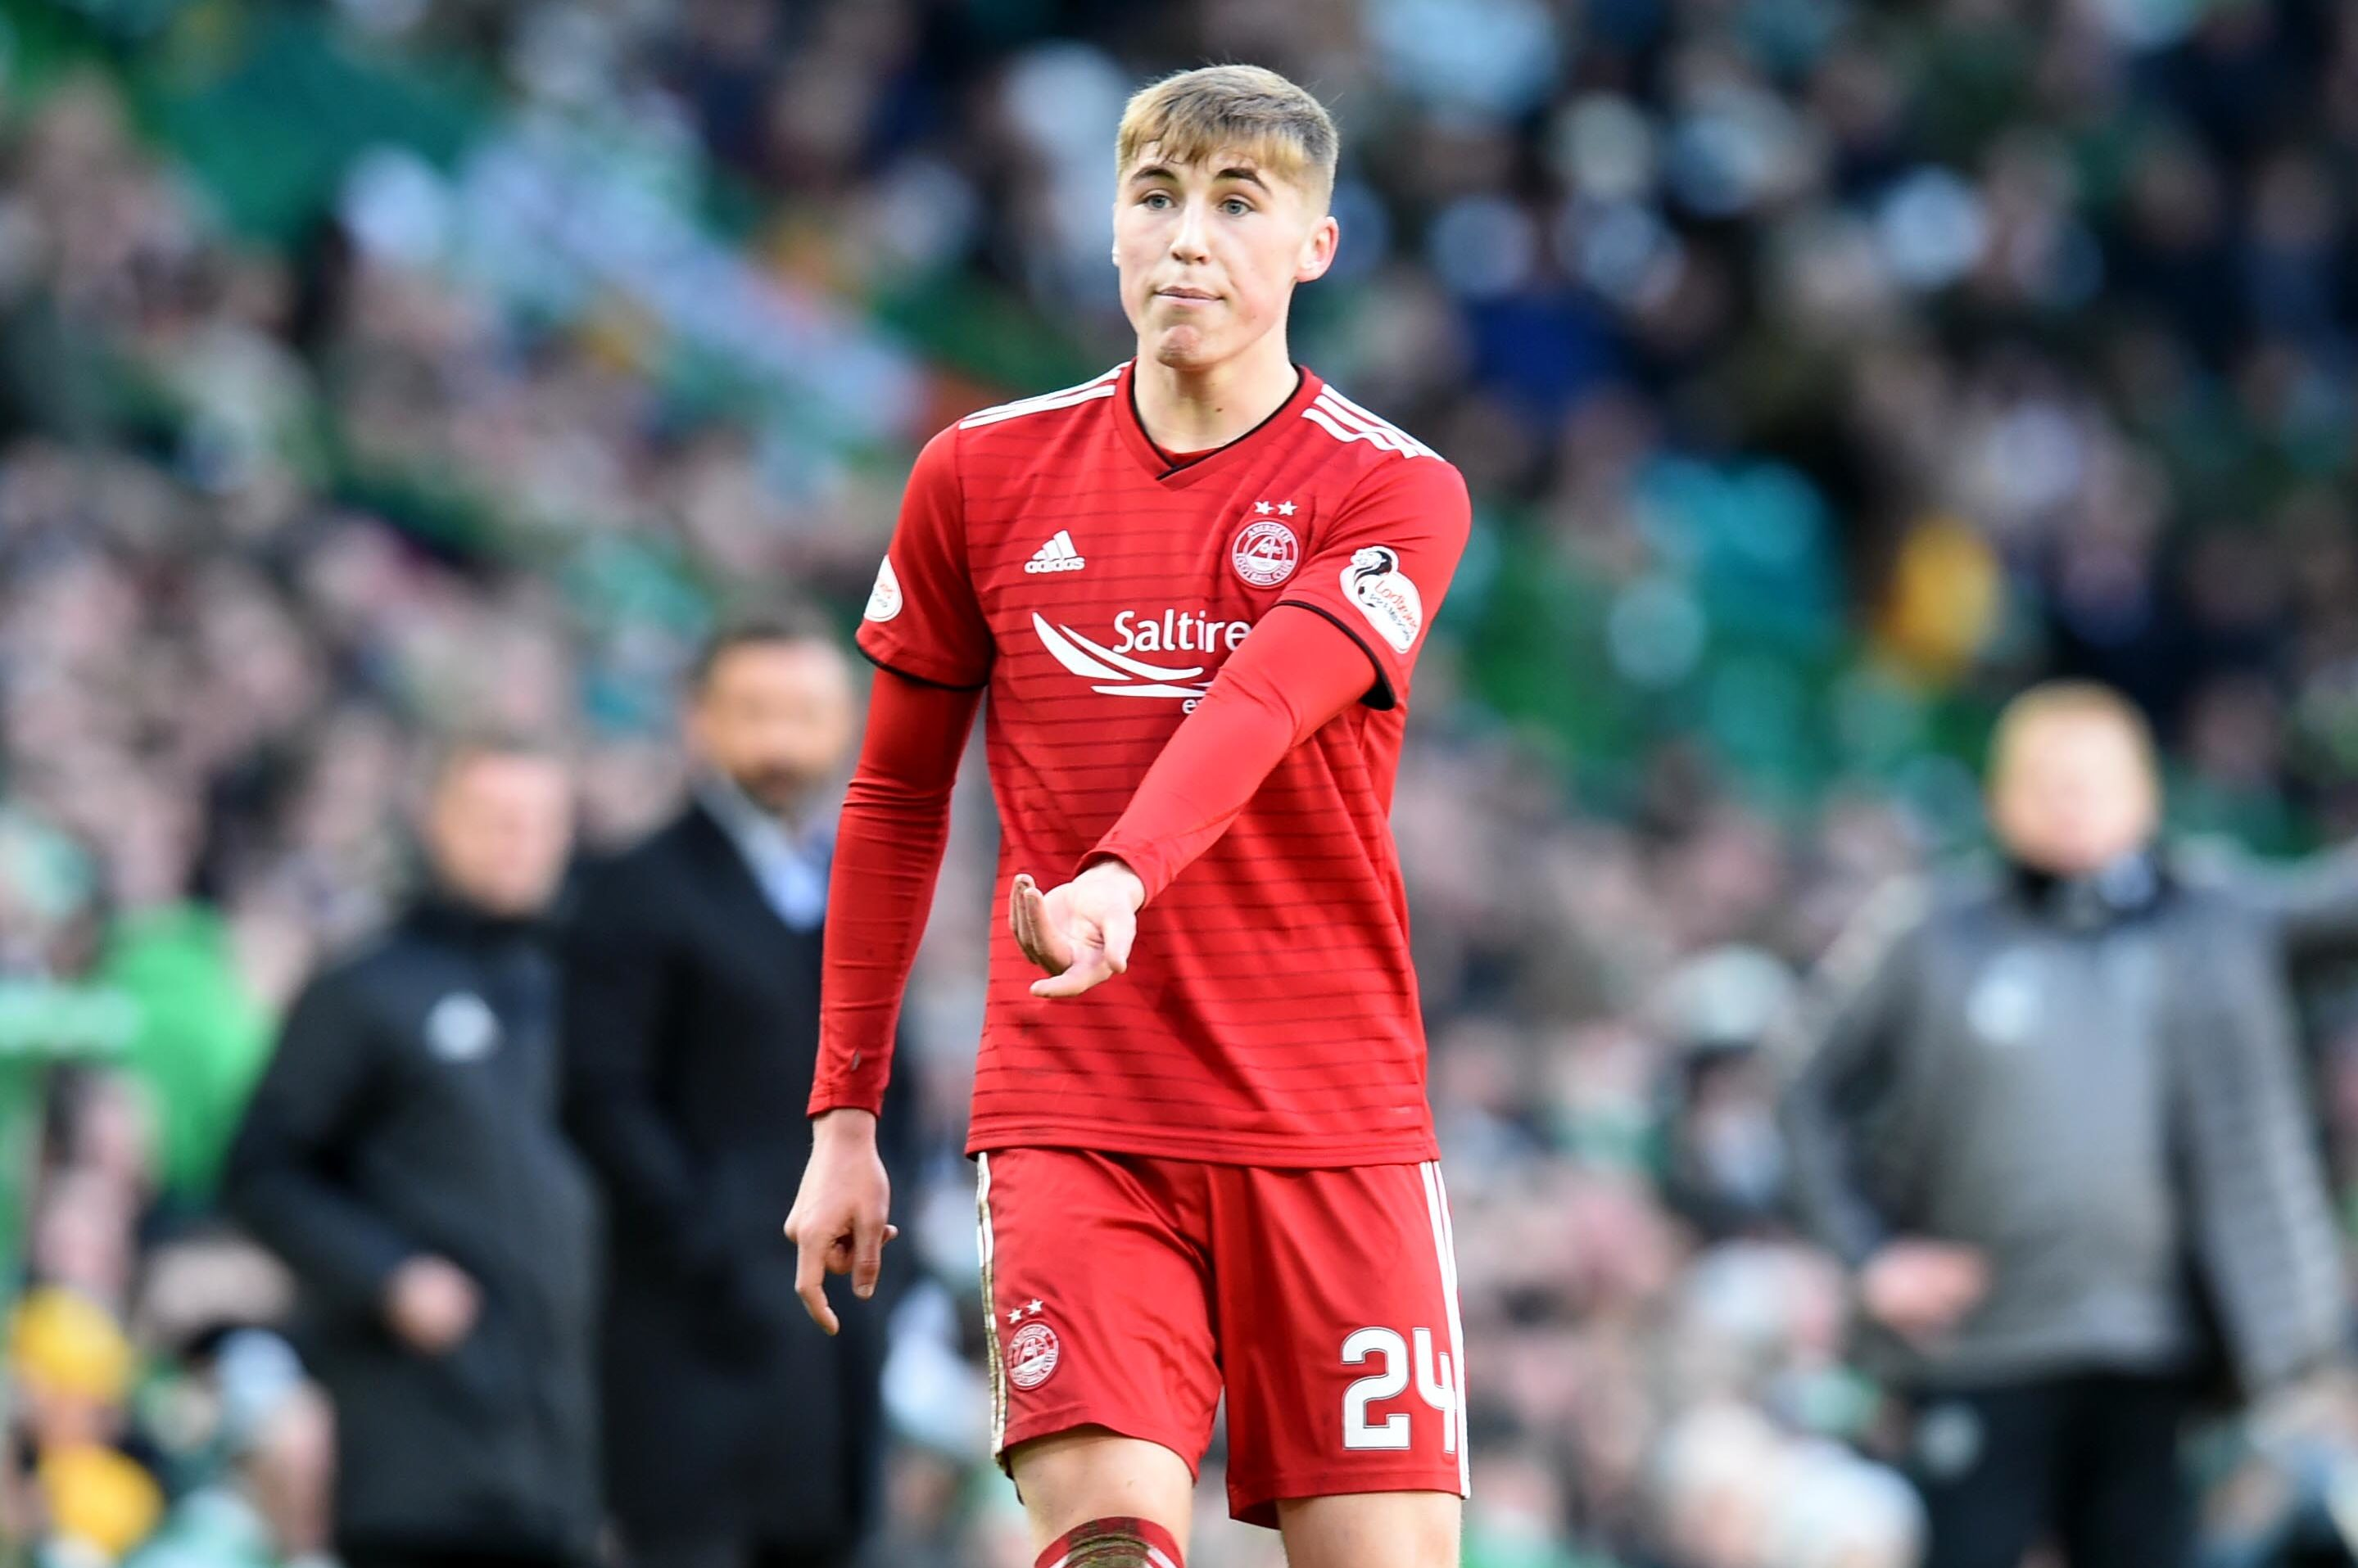 Aberdeen's Dean Campbell comes on at half-time against Celtic.